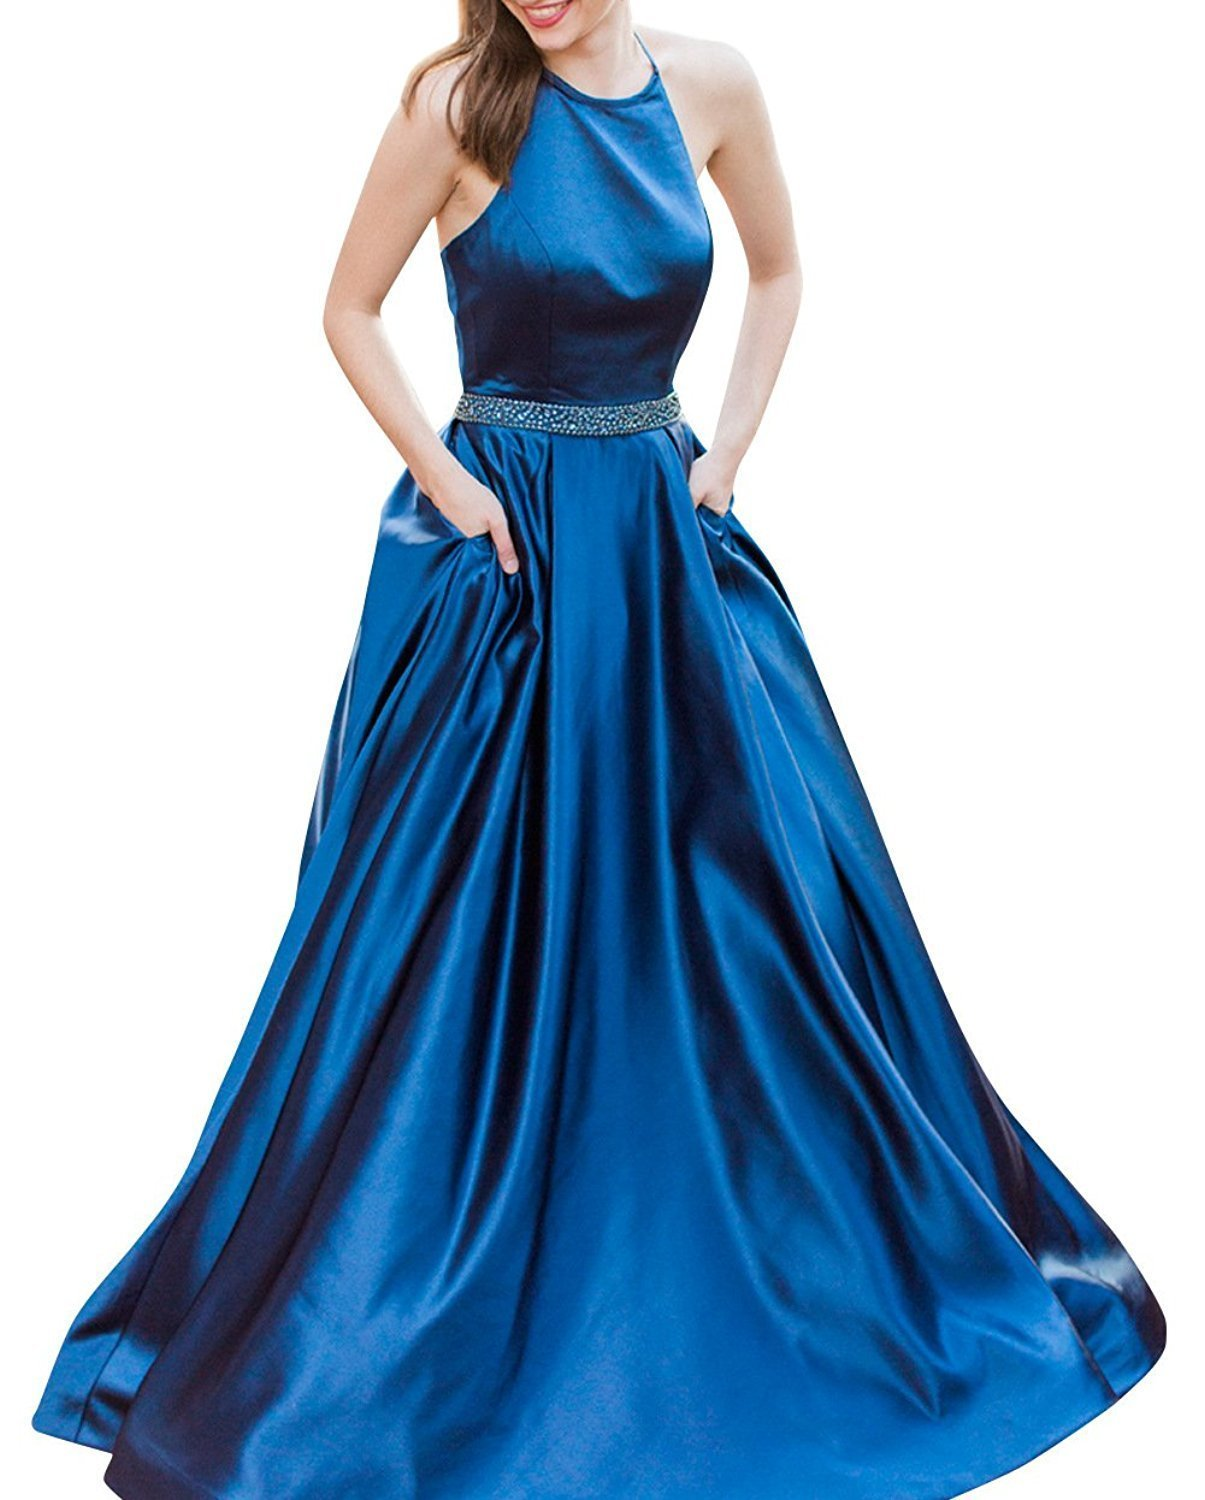 Primary image for Women's Long Halter Prom Dress with Pockets Beaded Evening Formal Ball Gowns